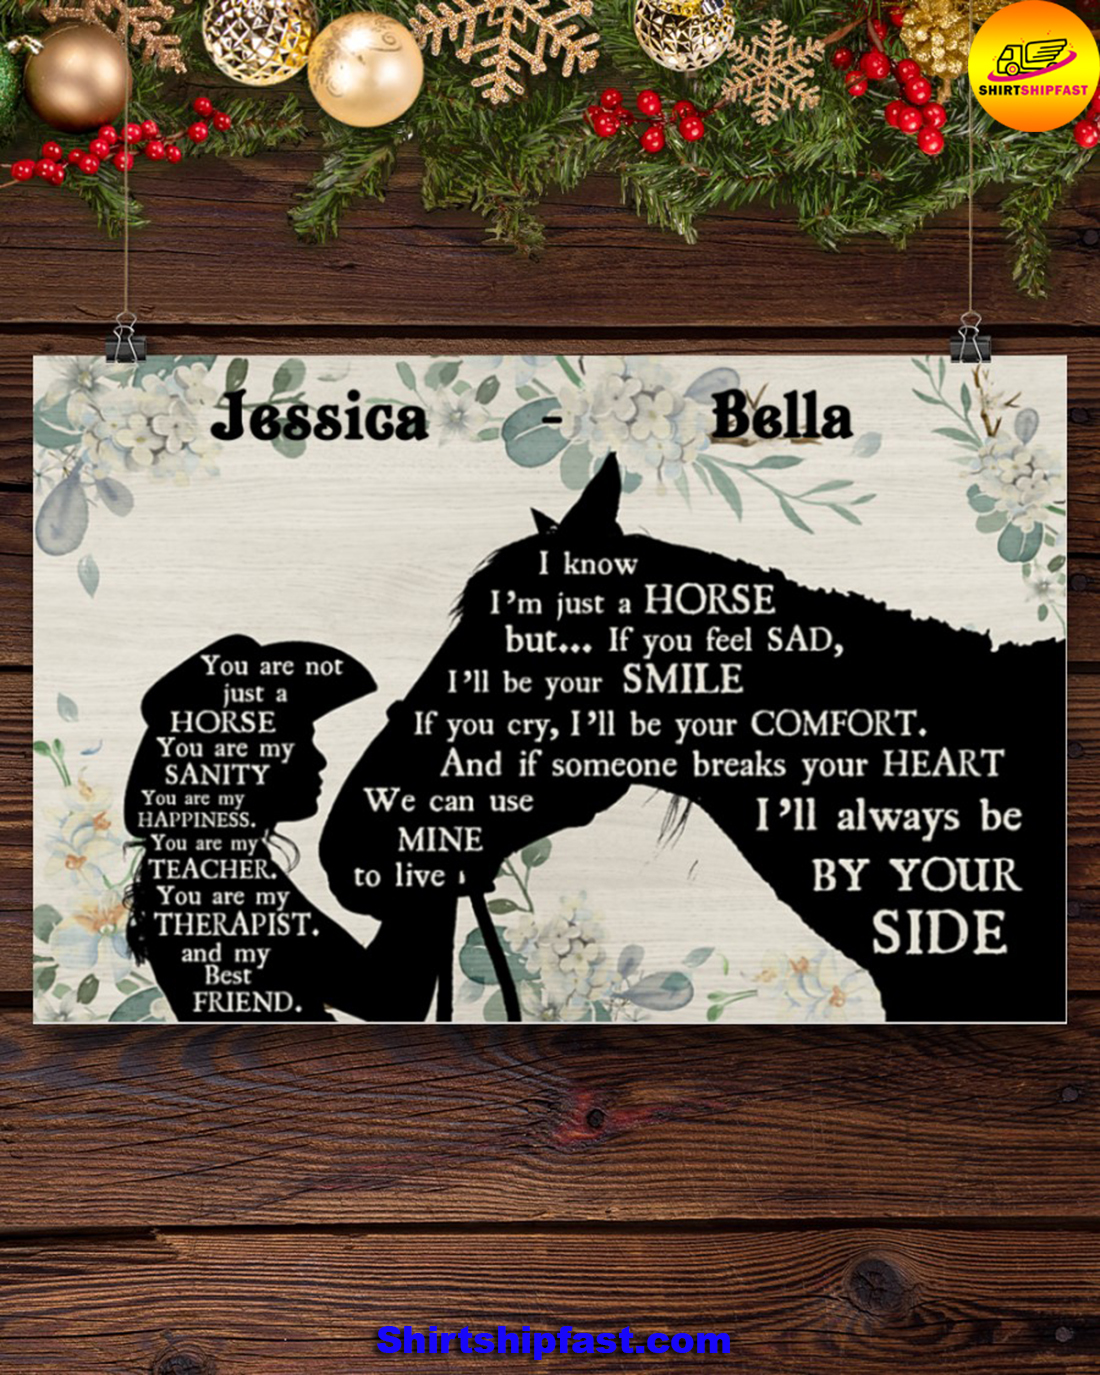 You are not just a horse personalized horse lover poster - Picture 2